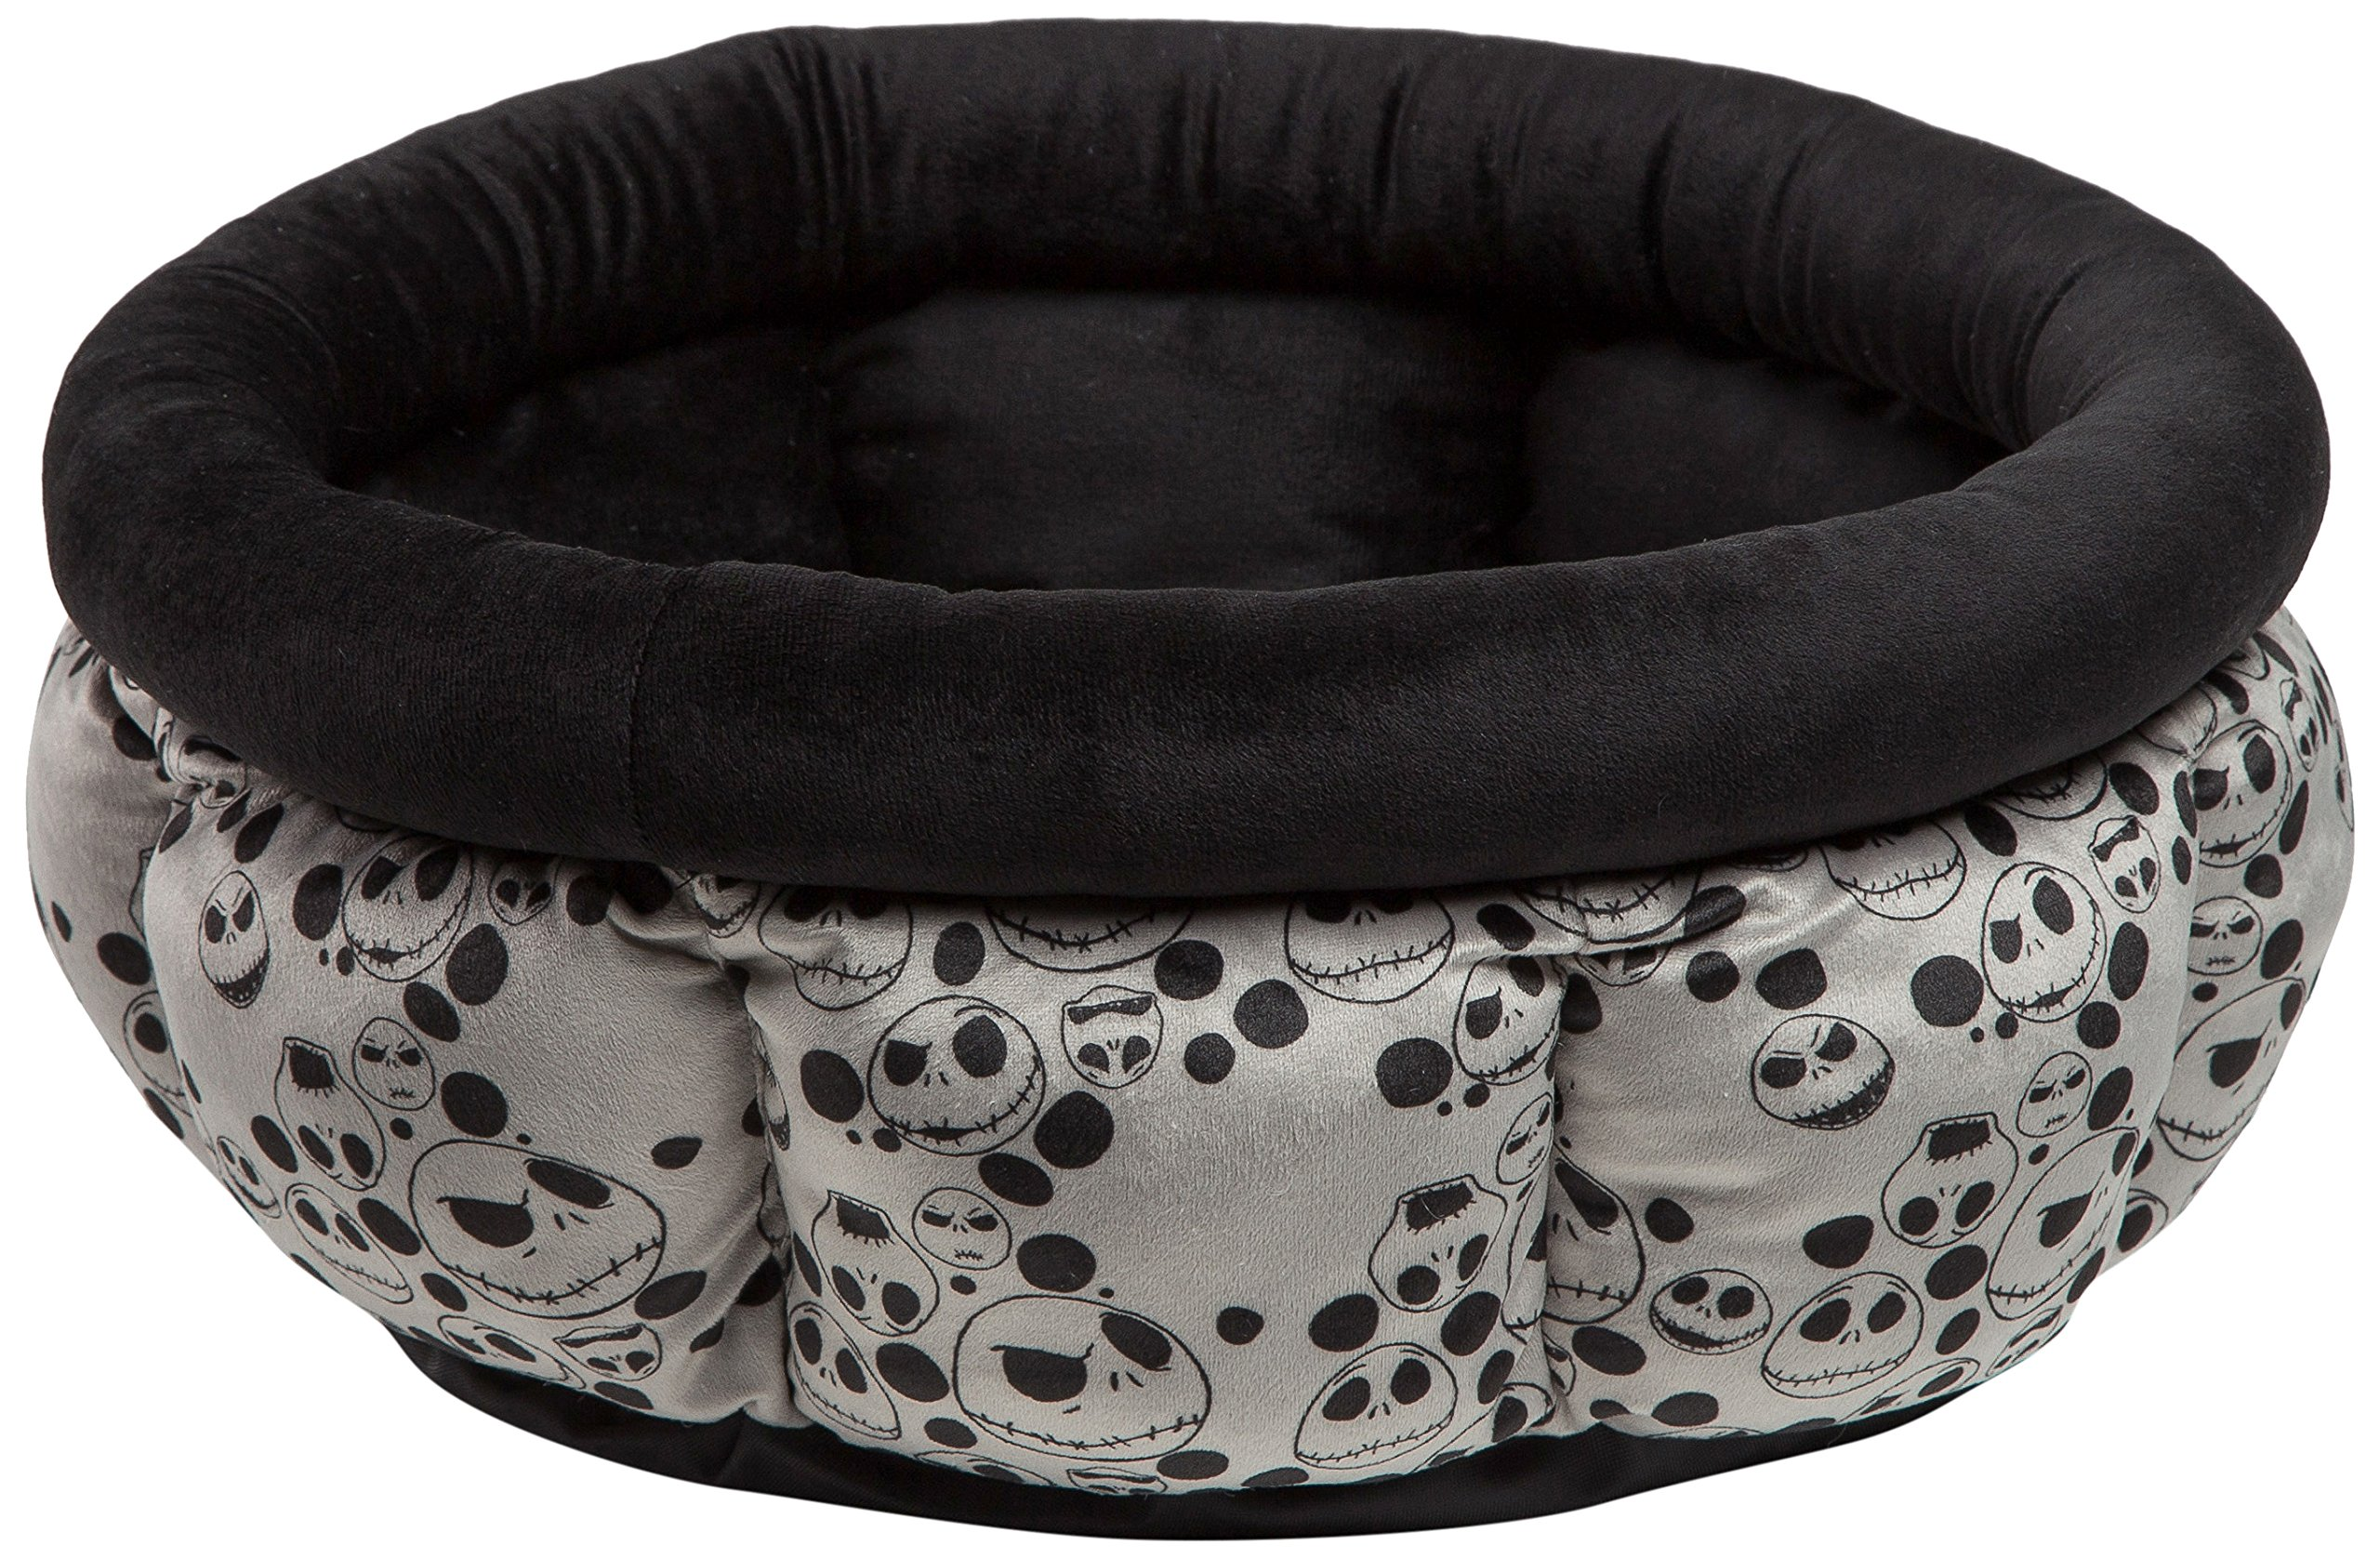 Disney Nightmare Before Christmas Jack Skellington Cuddle Cup Dog Bed / Cat Bed, Machine Washable, Dirt/Water Resistant Bottom, High Walls for Deeper Rest, For Pets up to 12lbs